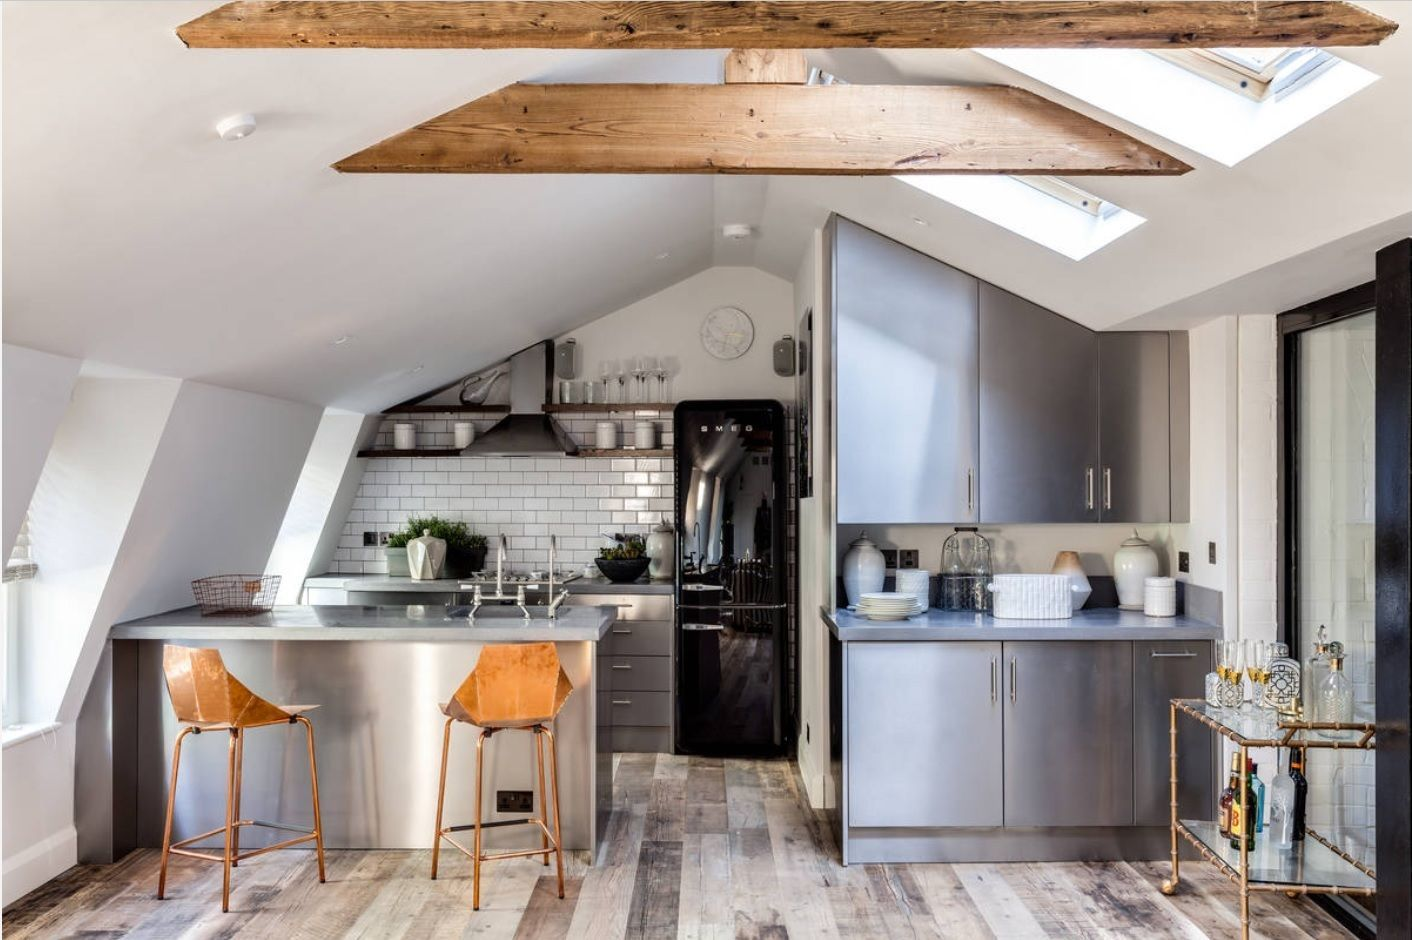 Open Kitchen Design & Interior Decoration. Natural trimming for small loft atmosphere